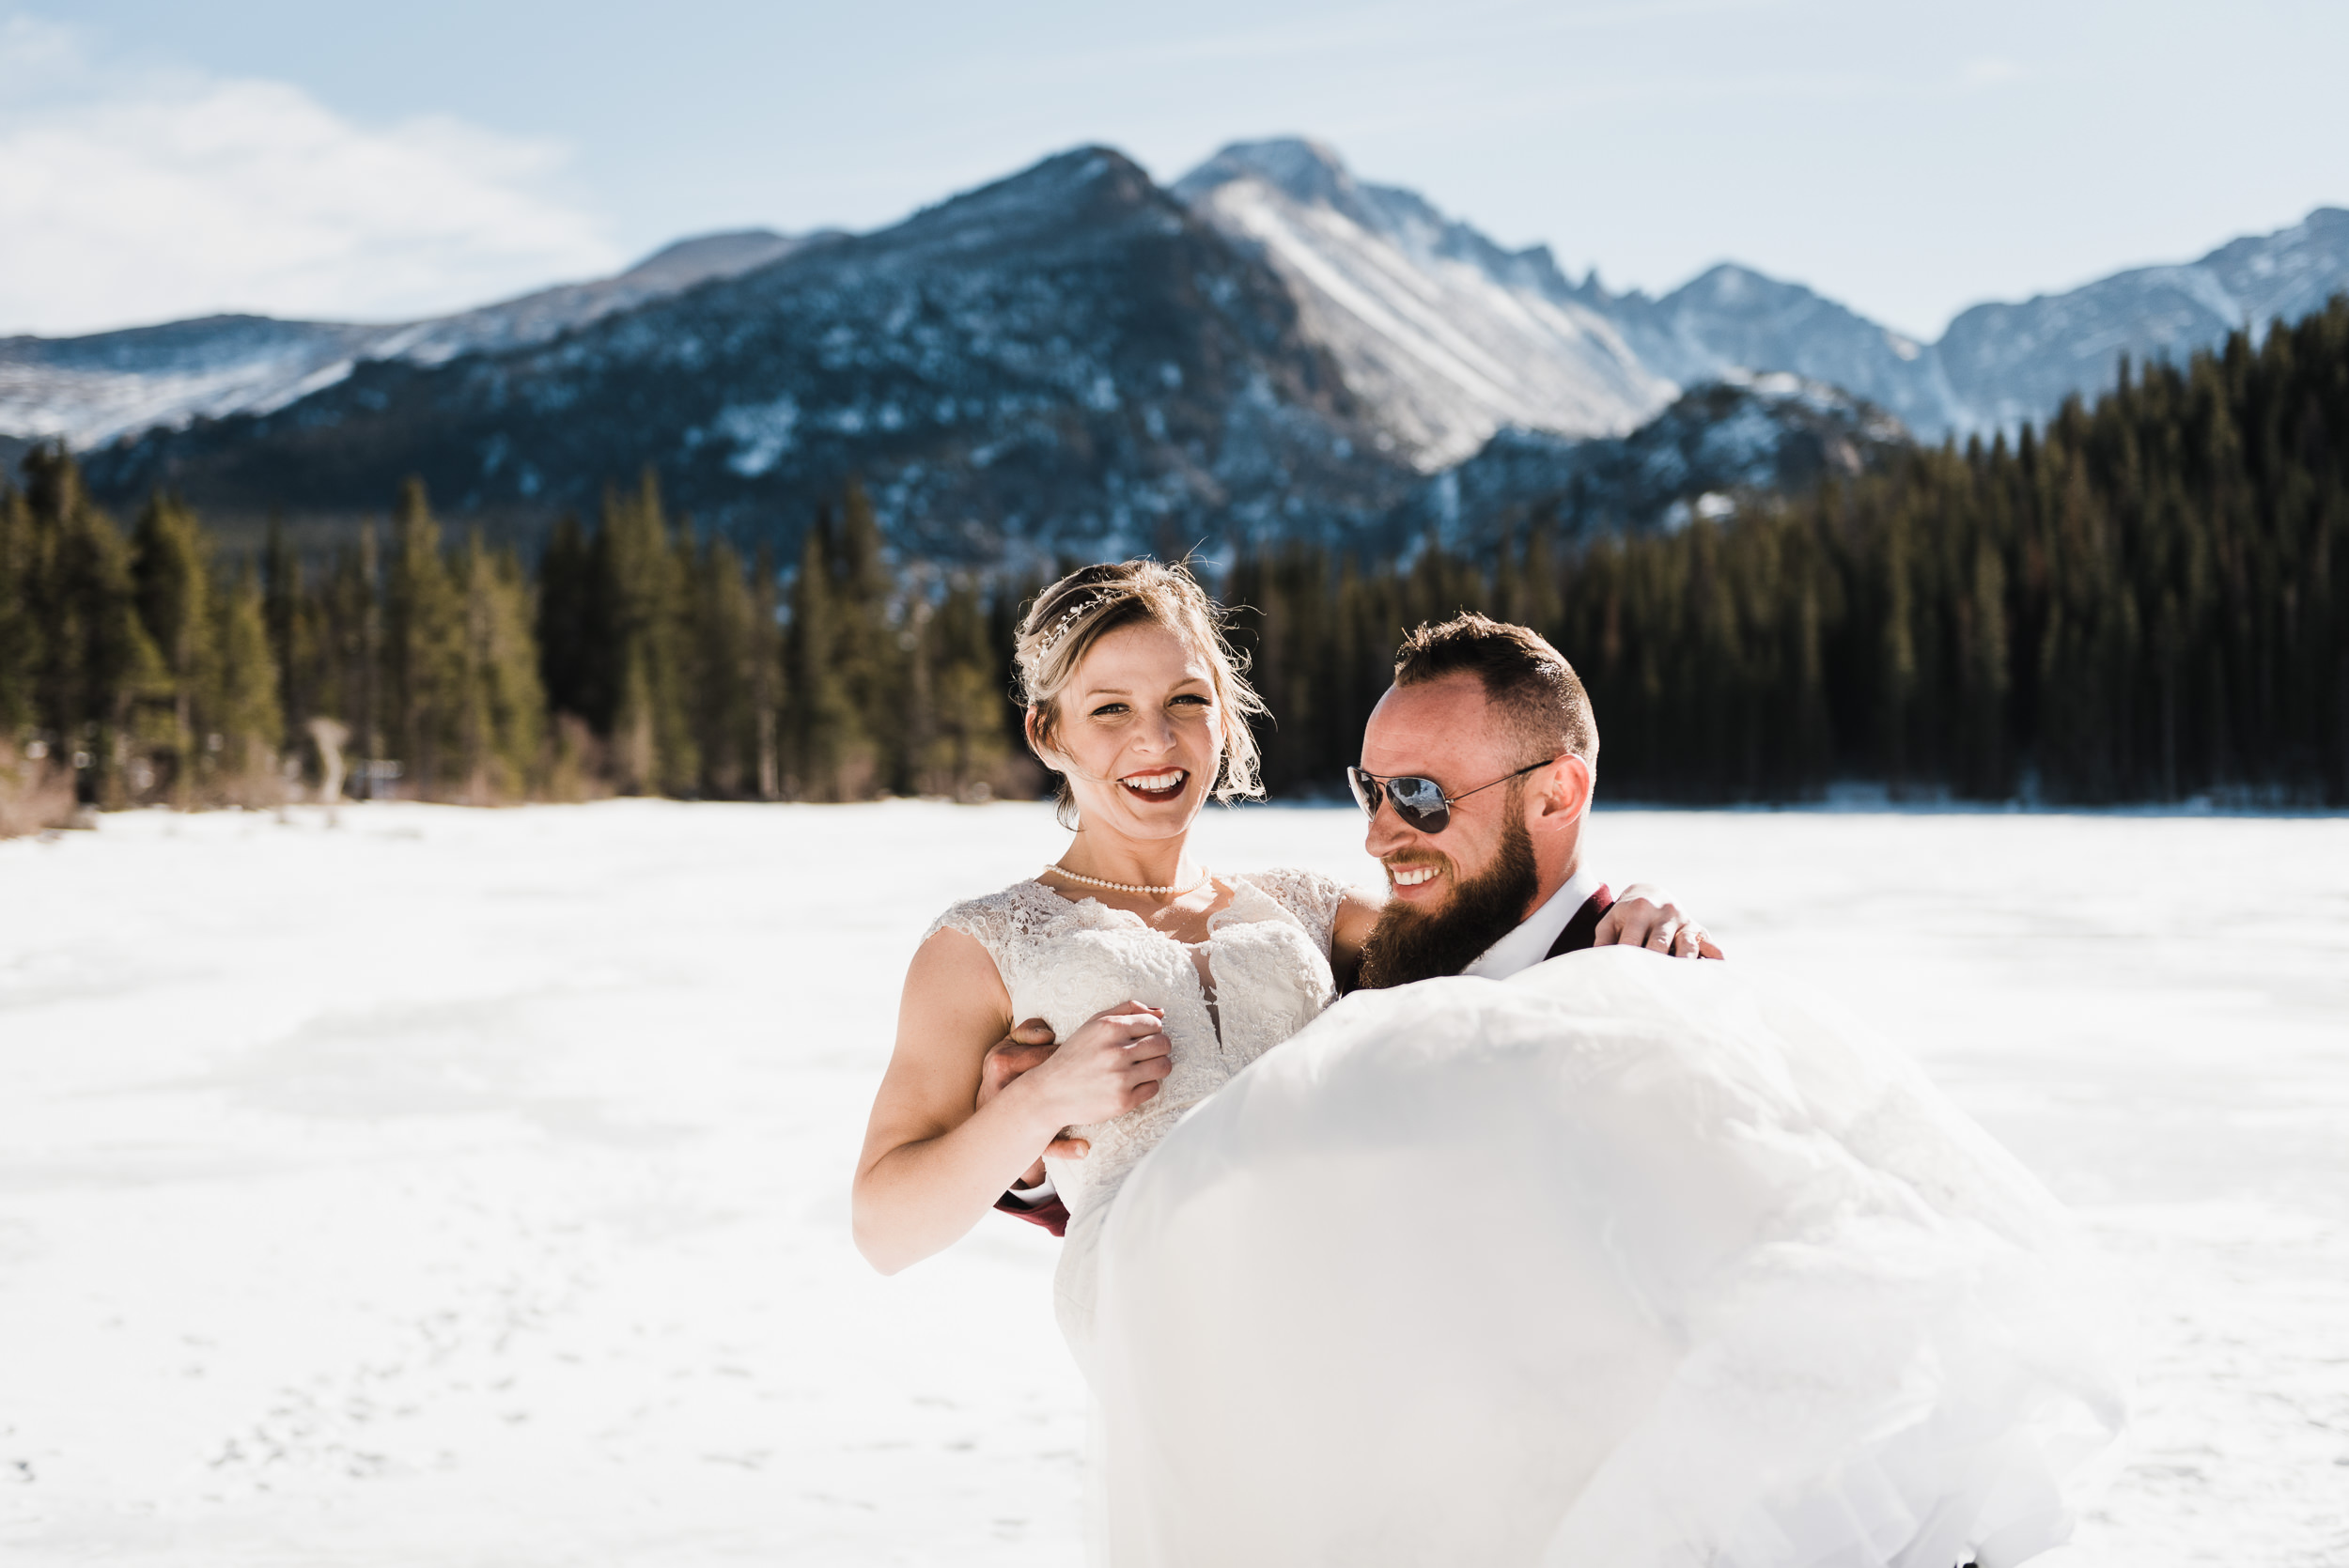 20181214-Colorado-Rocky-Mountain-National-Park-Elopement-Kelsie-Jason-024.jpg